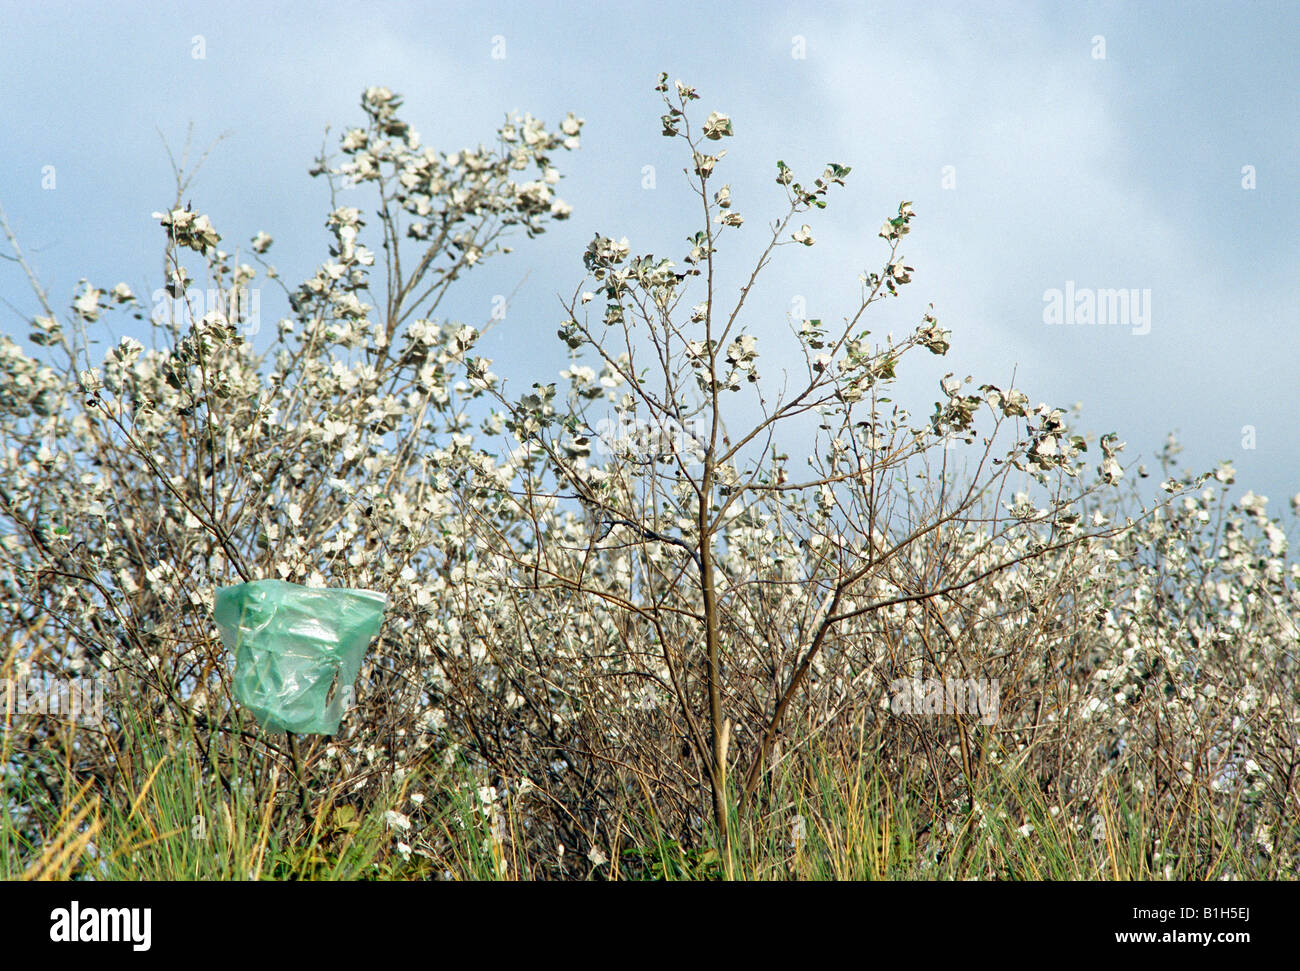 Plastic bag caught on plant - Stock Image